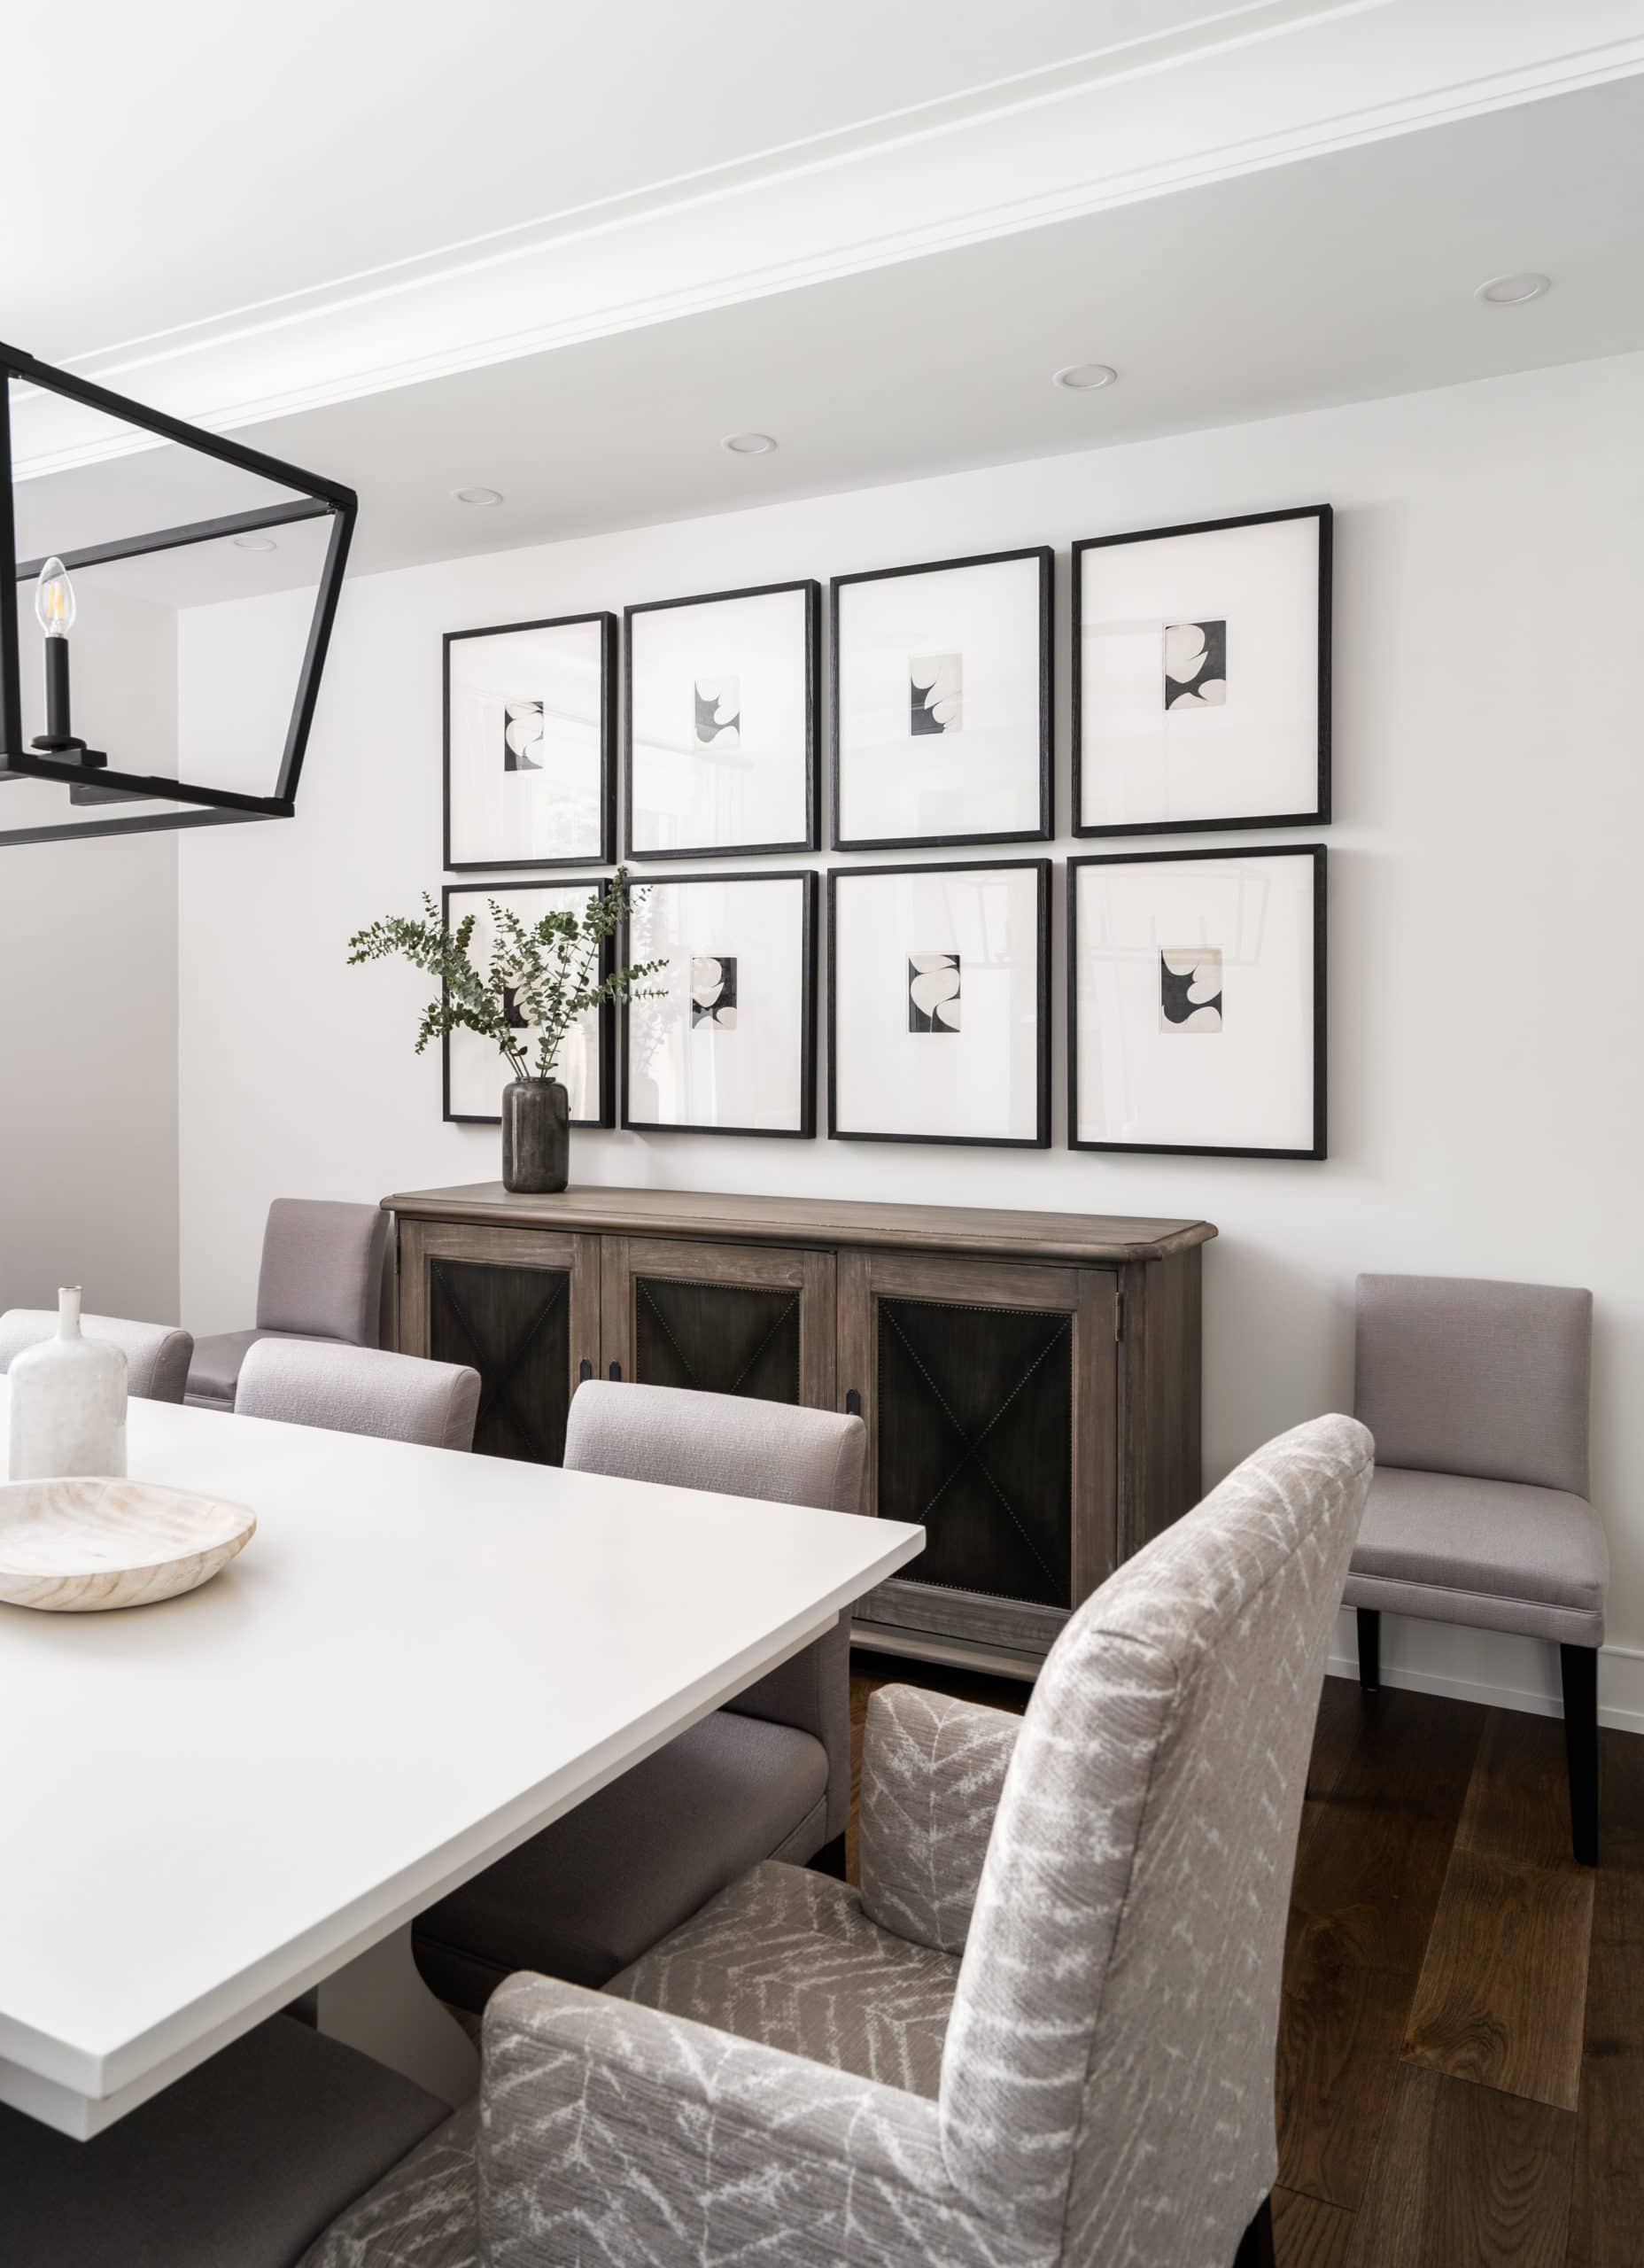 Modern, clean dining room with a white table